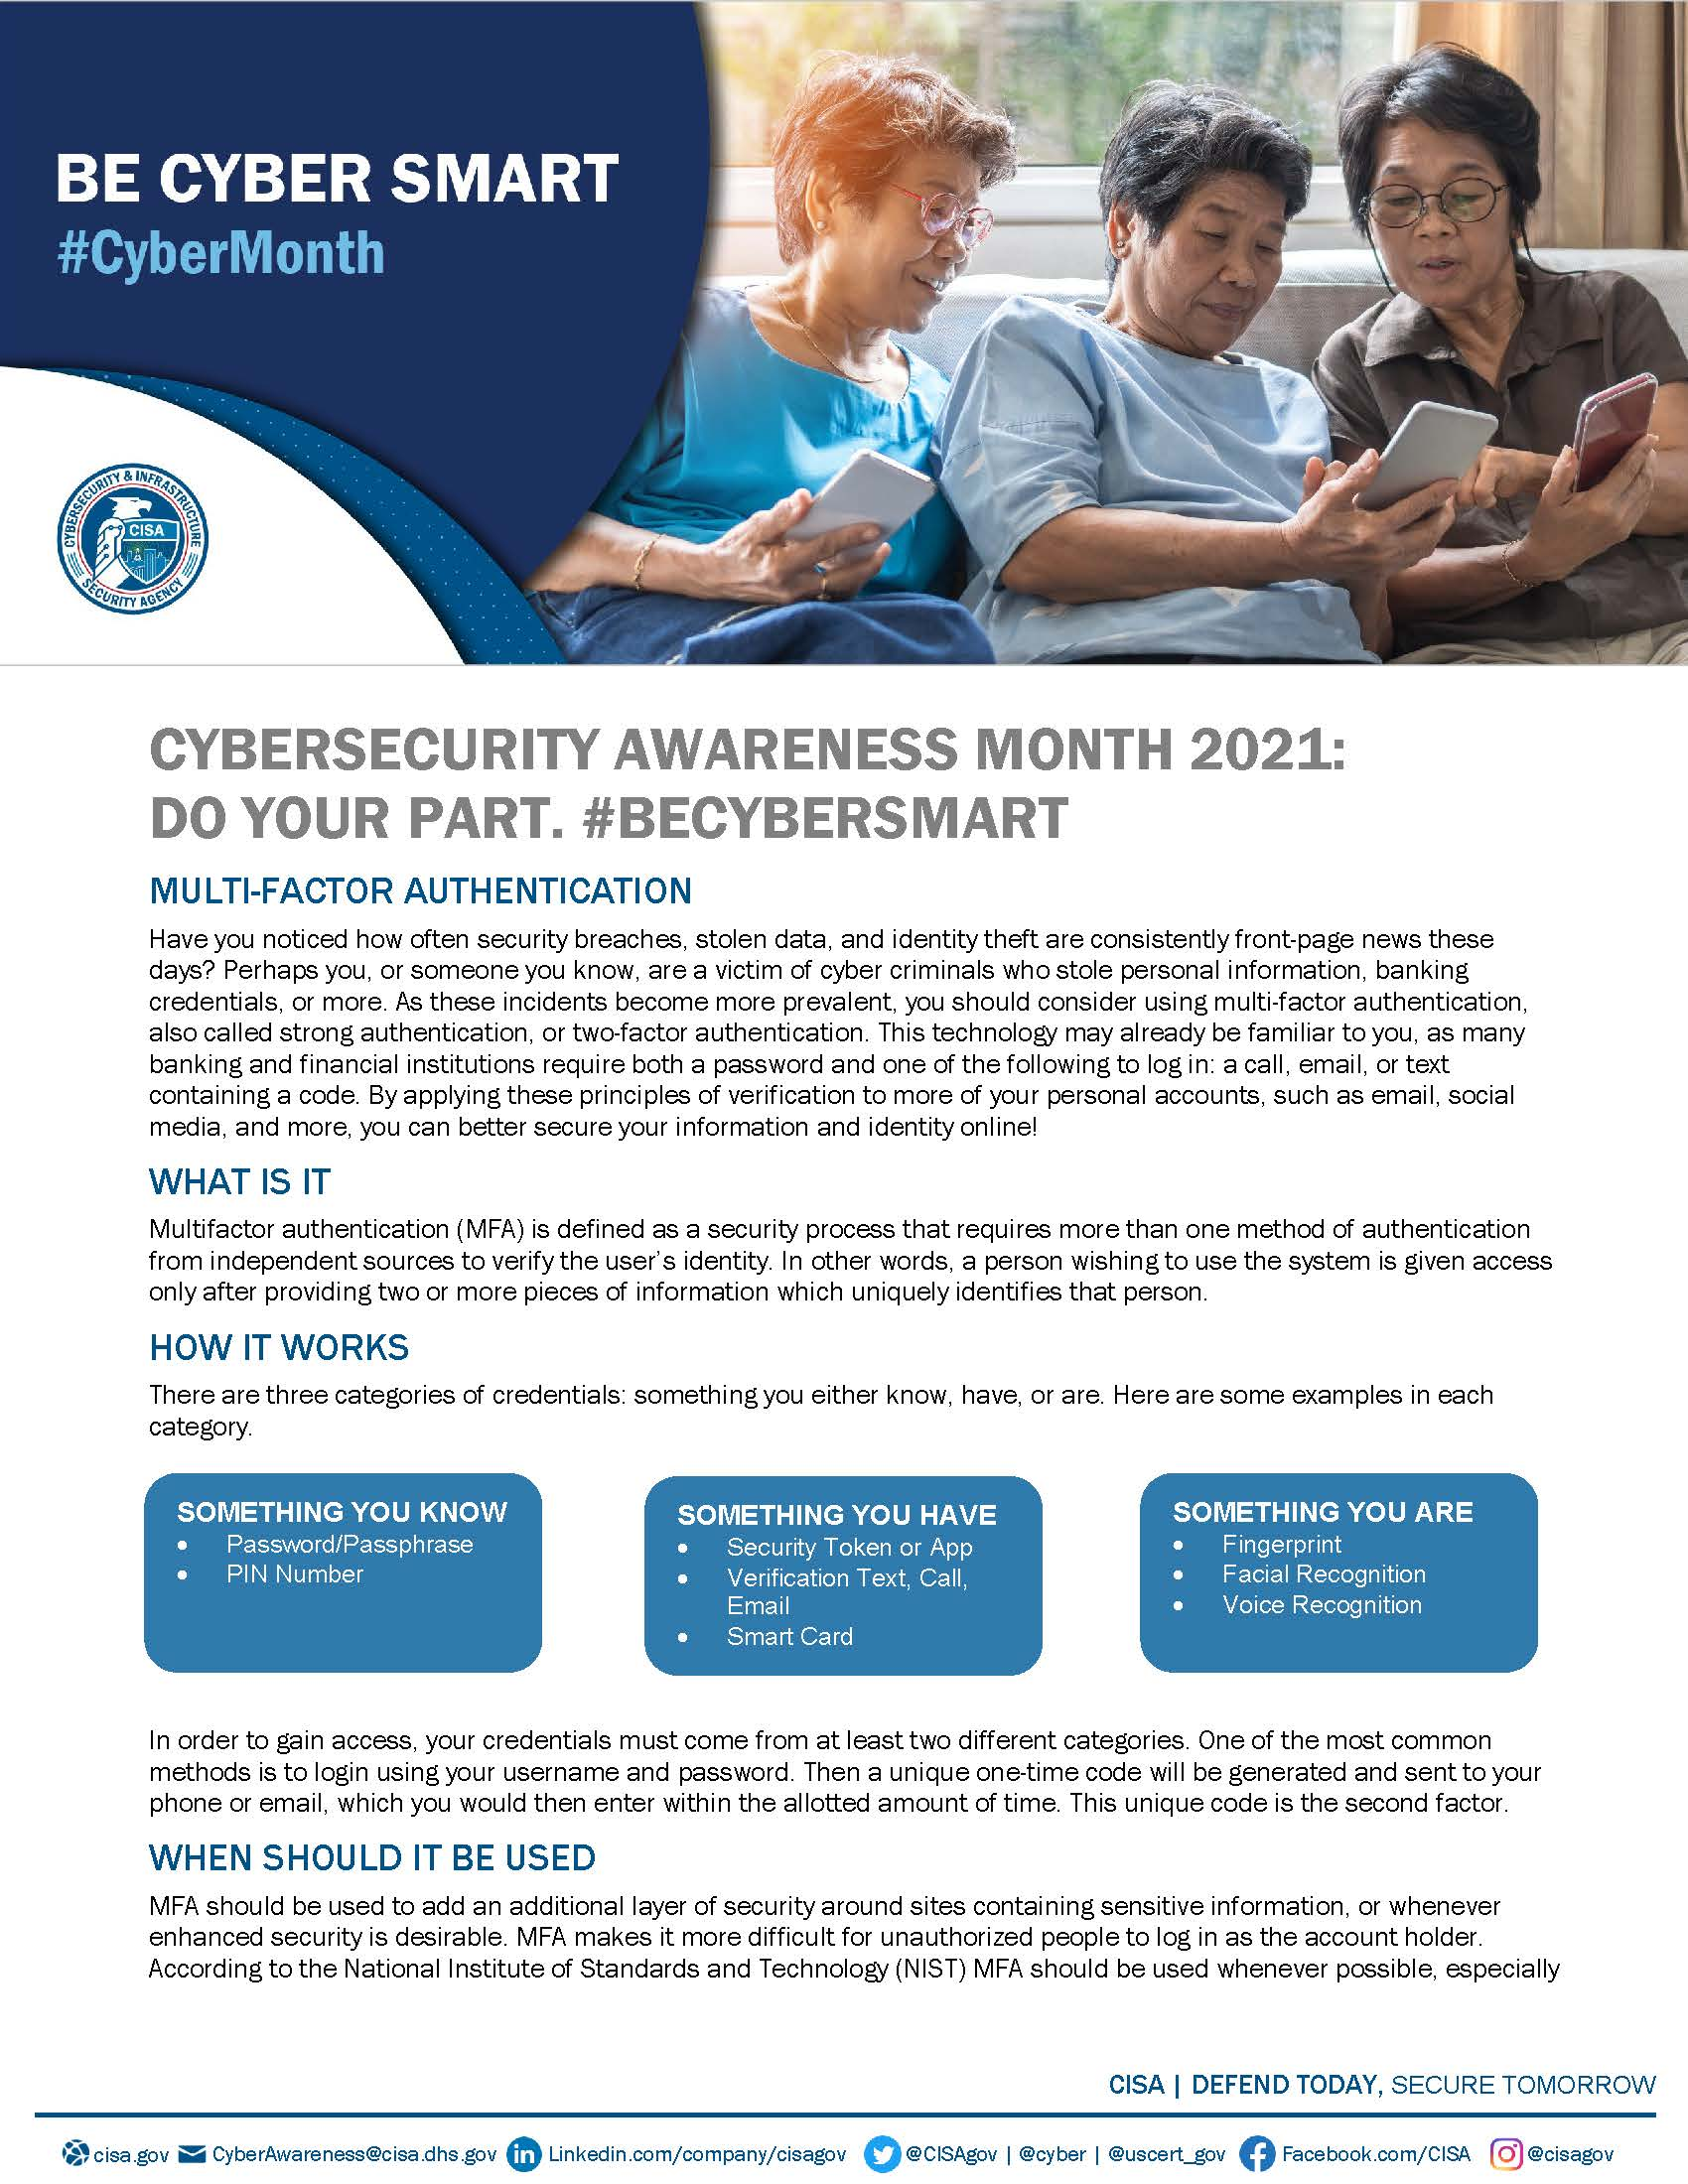 Cybersecurity Awareness Month 2021 - MFA Tip Sheet_Page_1